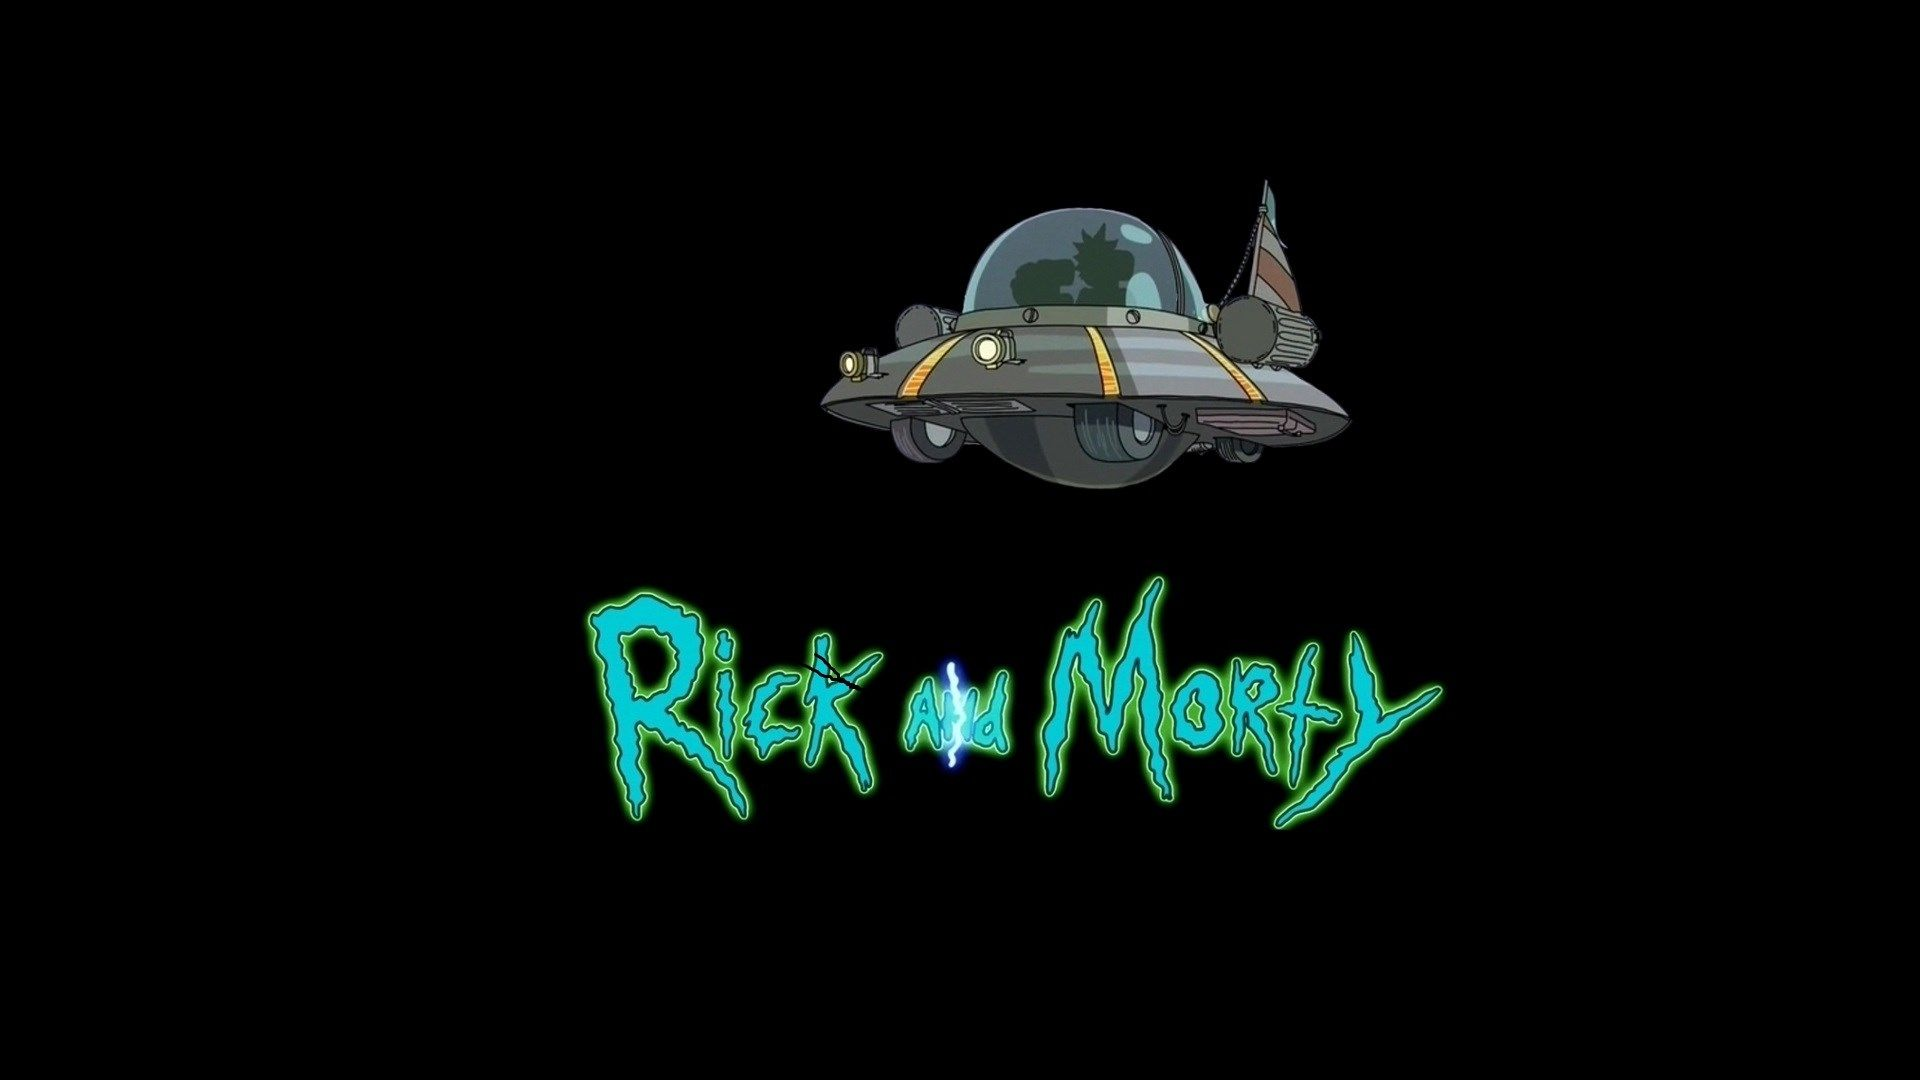 Rick And Morty Laptop Wallpapers Hd Widescreen Wallpaper